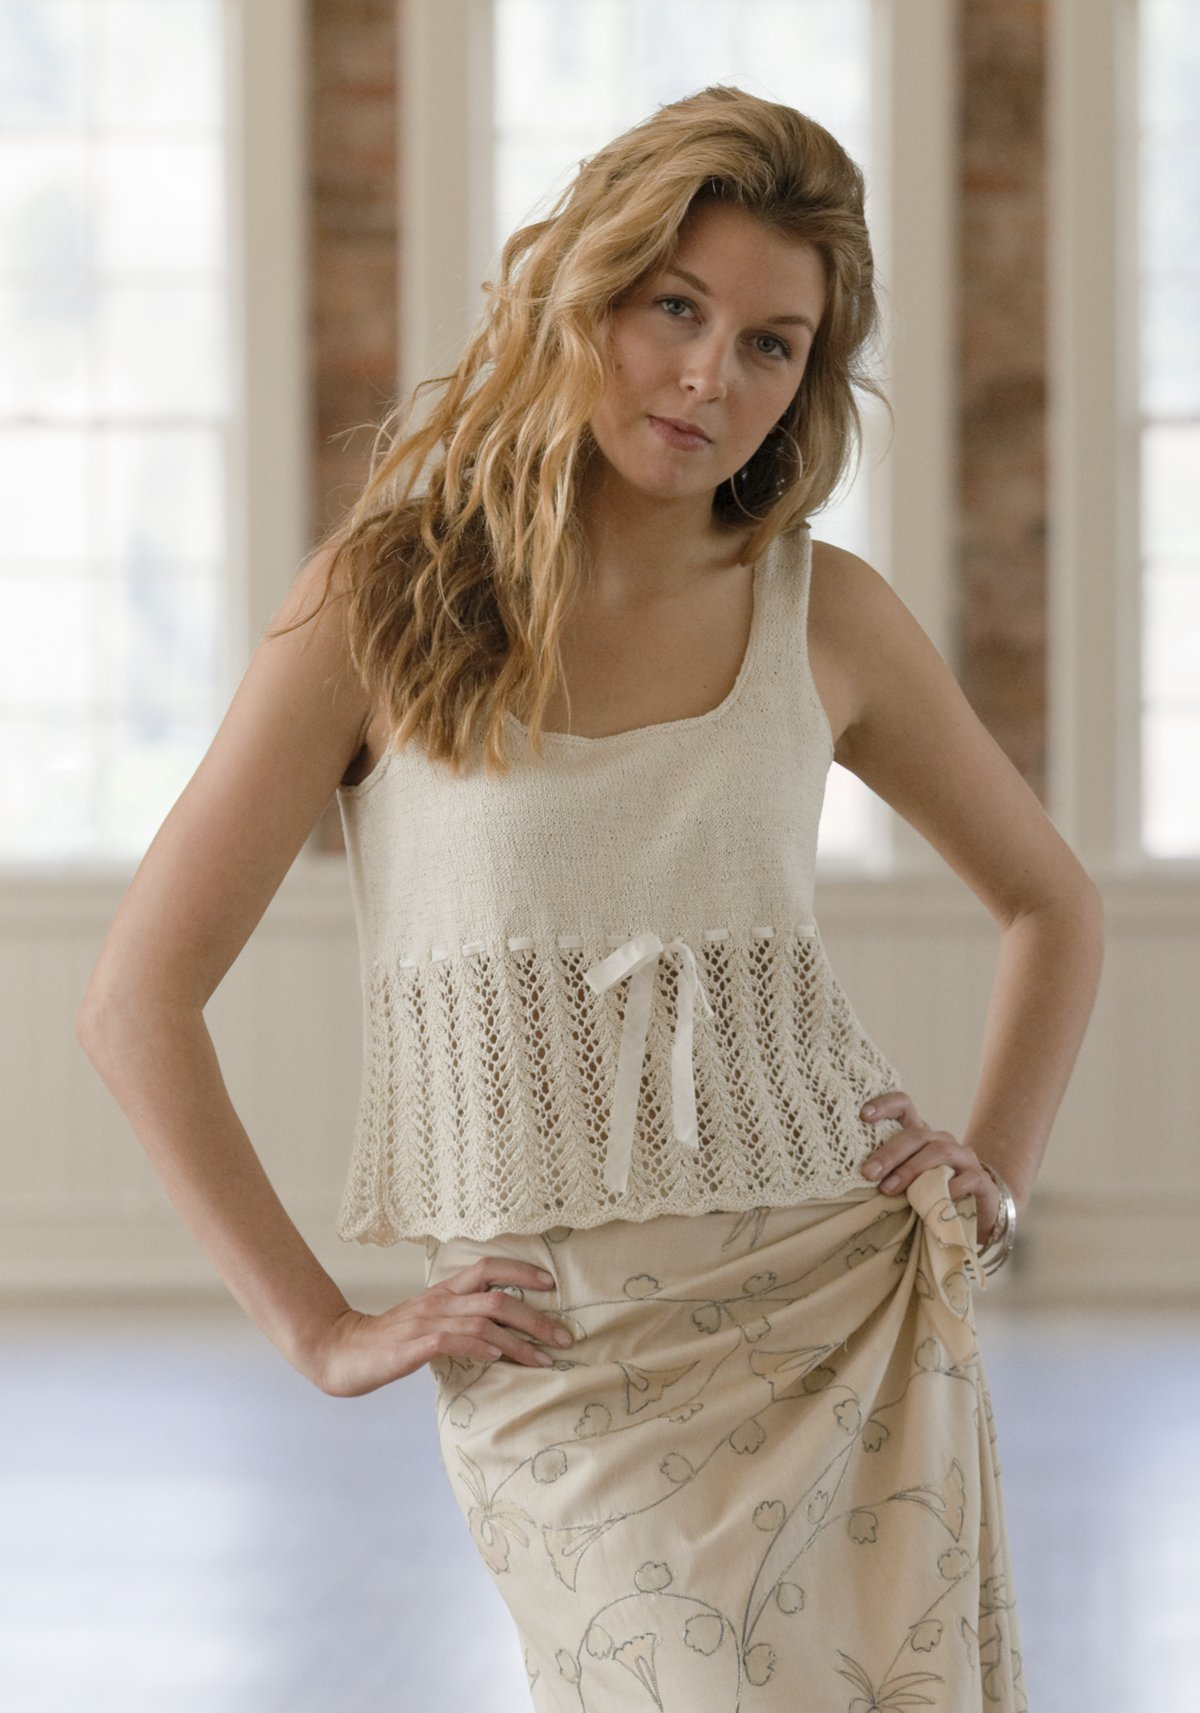 Dolce HandKnits: Simple, Sophisticated Designs: Kim Dolce ...